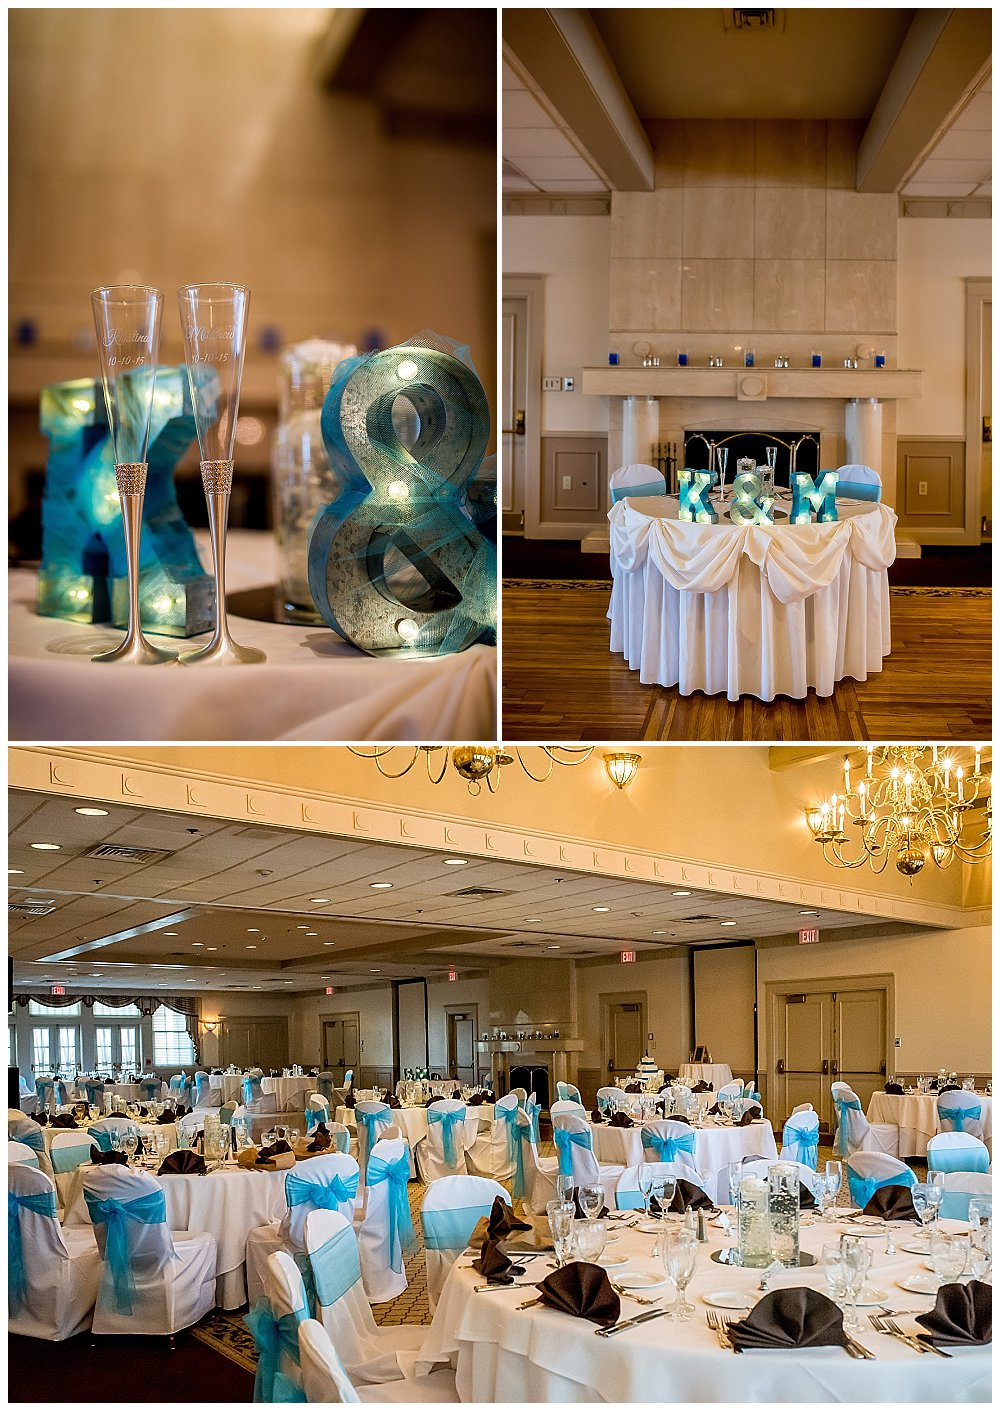 ©Silver Orchid Photography_wedding photography_CantandoBrooksideMacungie_silverorchidphotography.com_0091.jpg